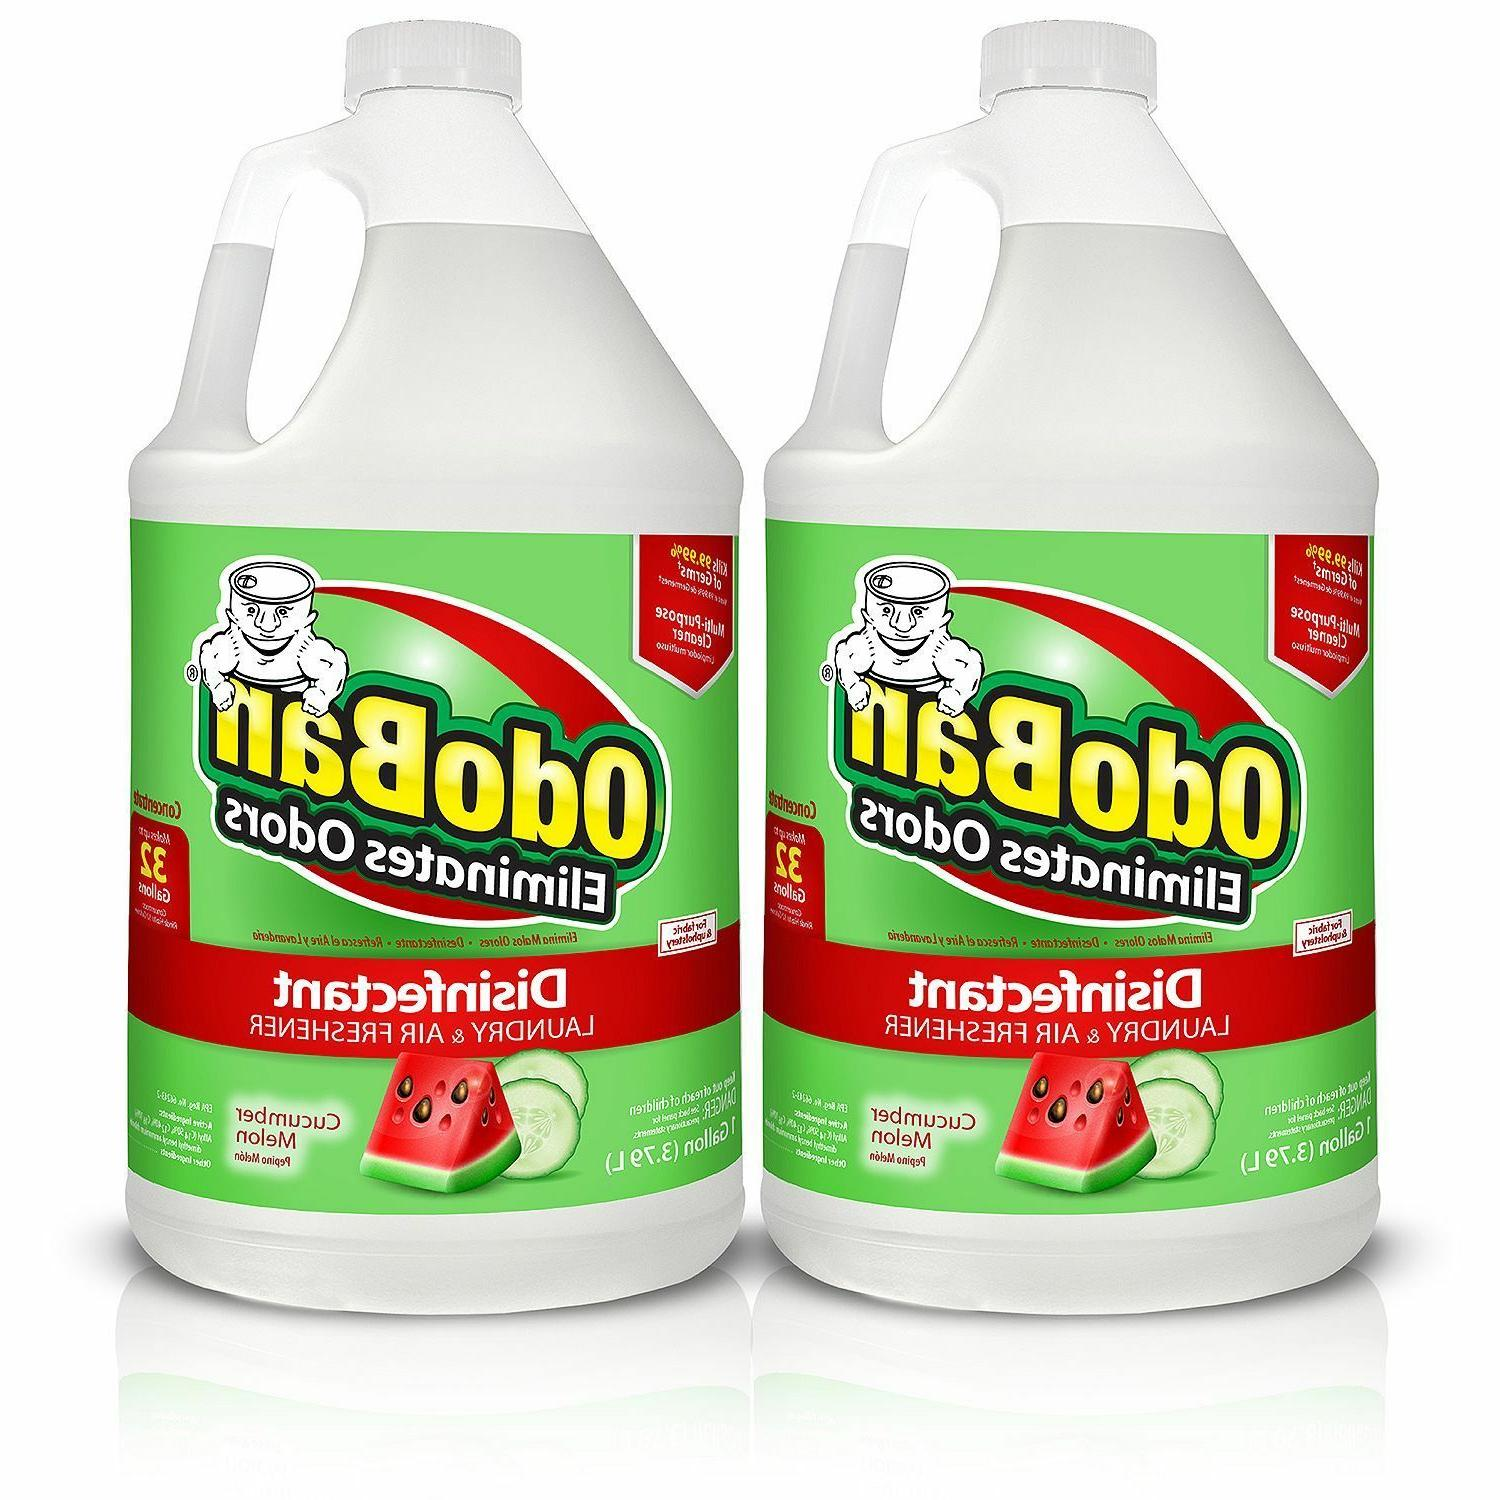 odor disinfectant eucalyptus concentrate ready